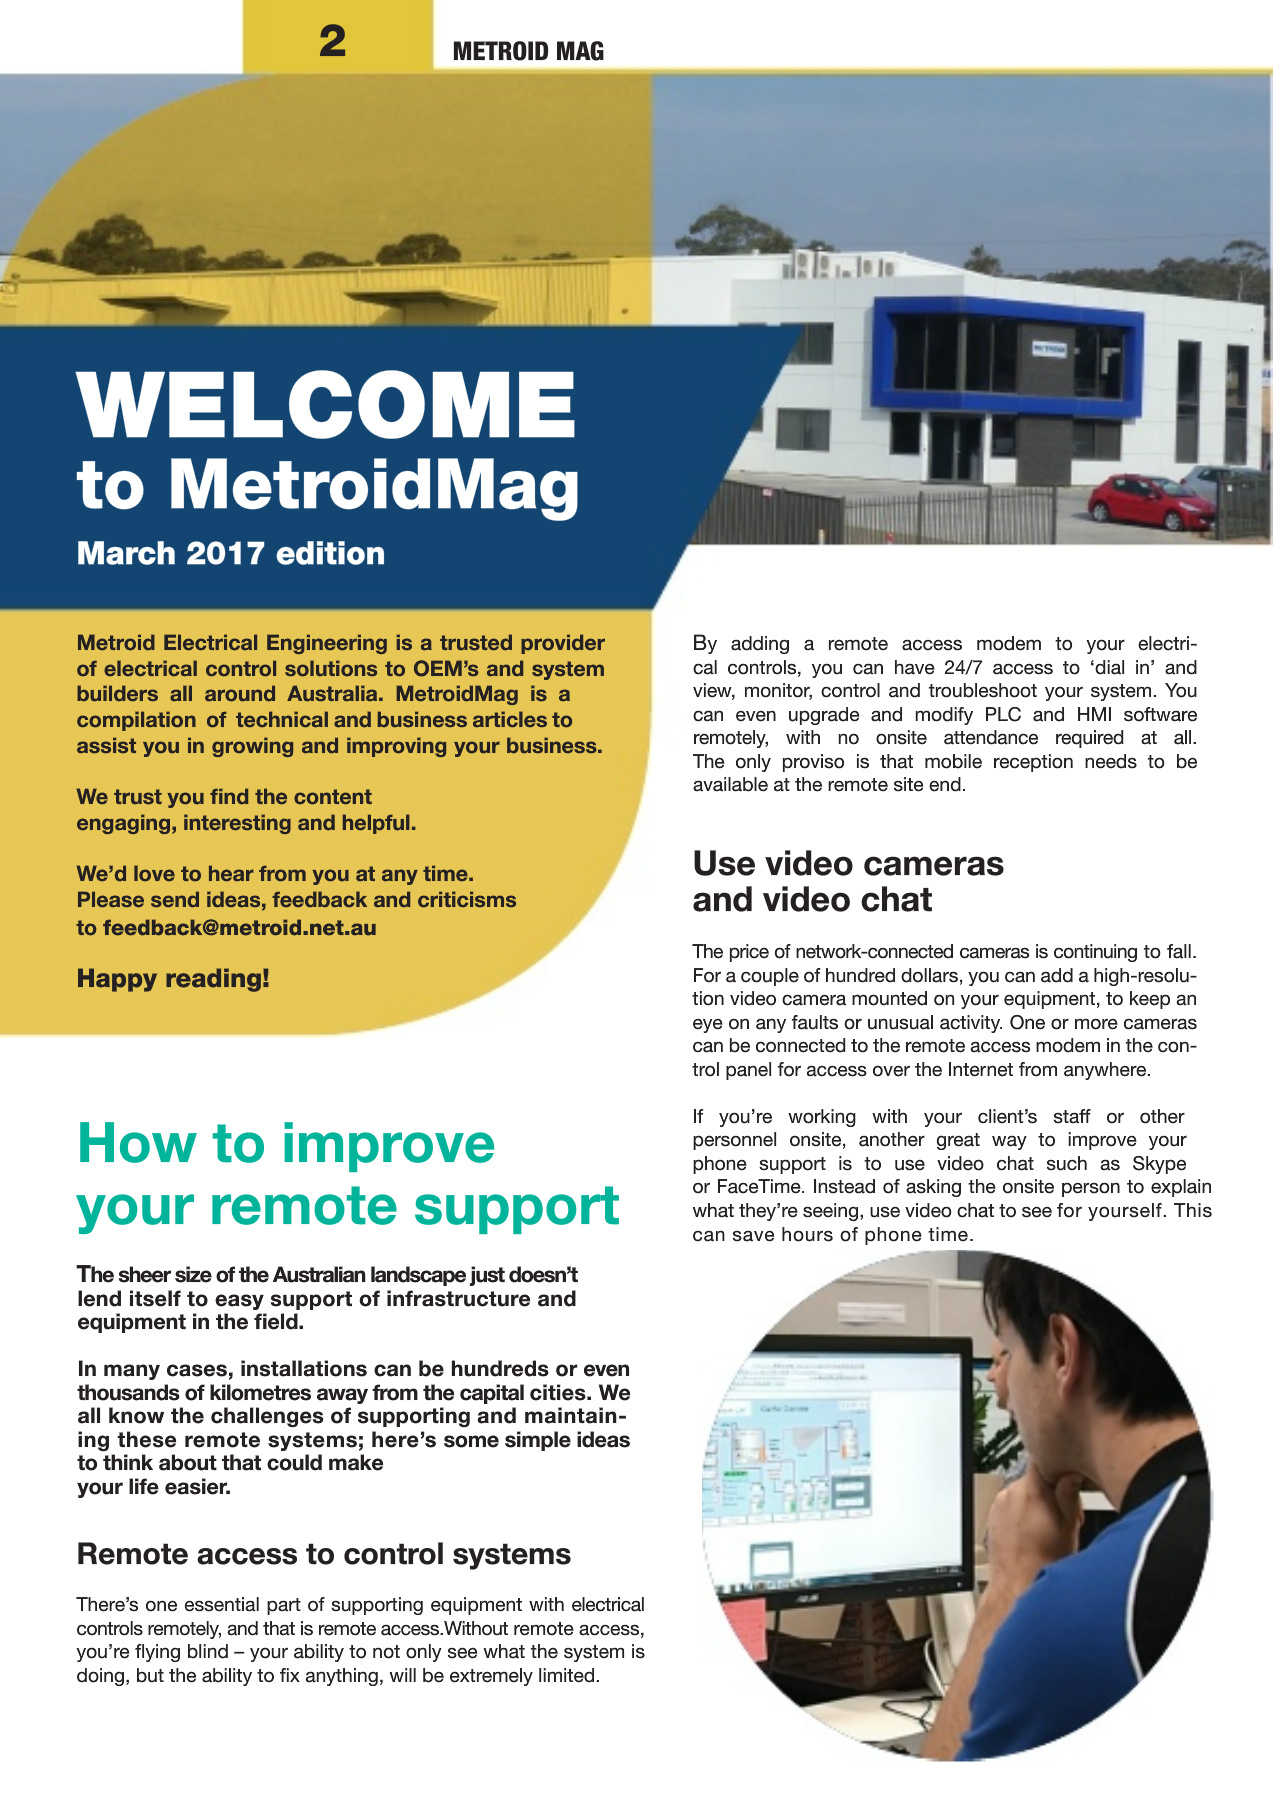 Metroid Mag - March 2017 - Metroid Electrical Engineering